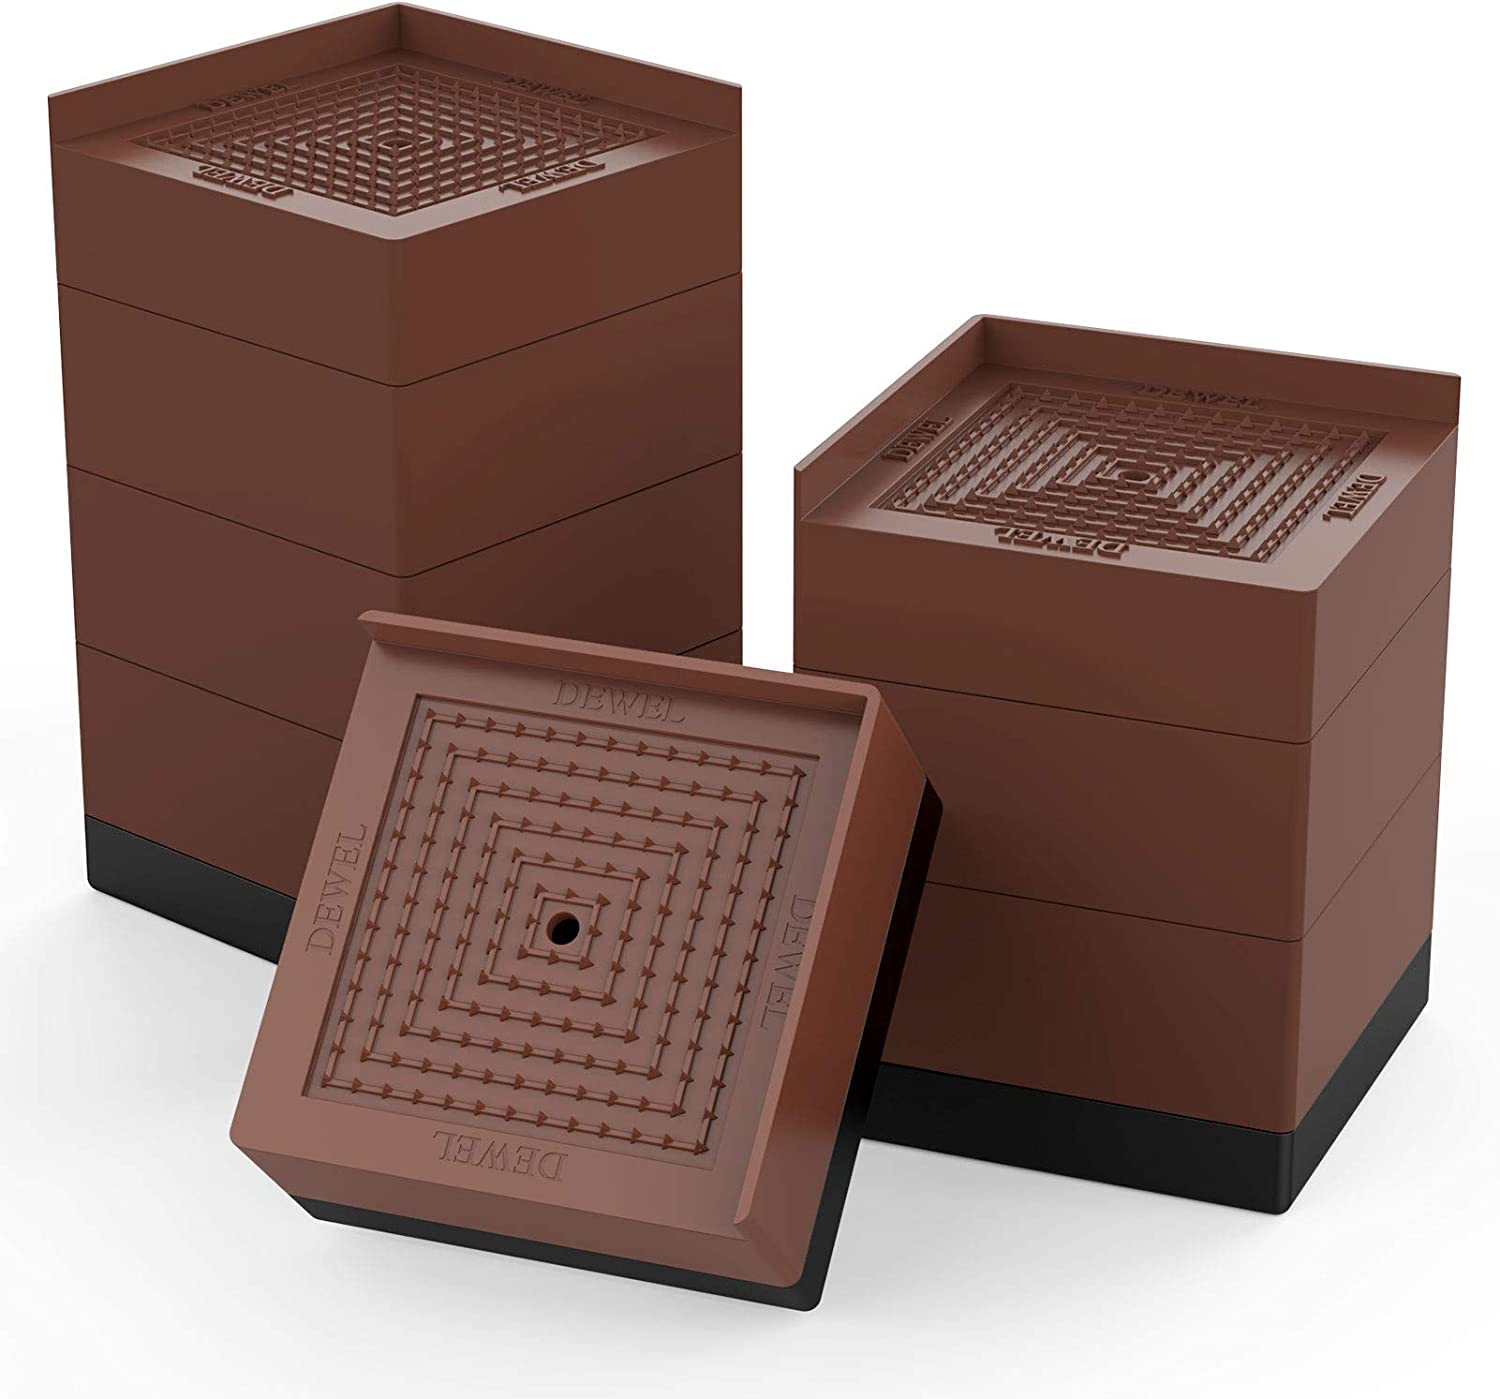 Bed Risers Heavy Duty Square Adjustable Furniture Risers Stackable Height of 1.9